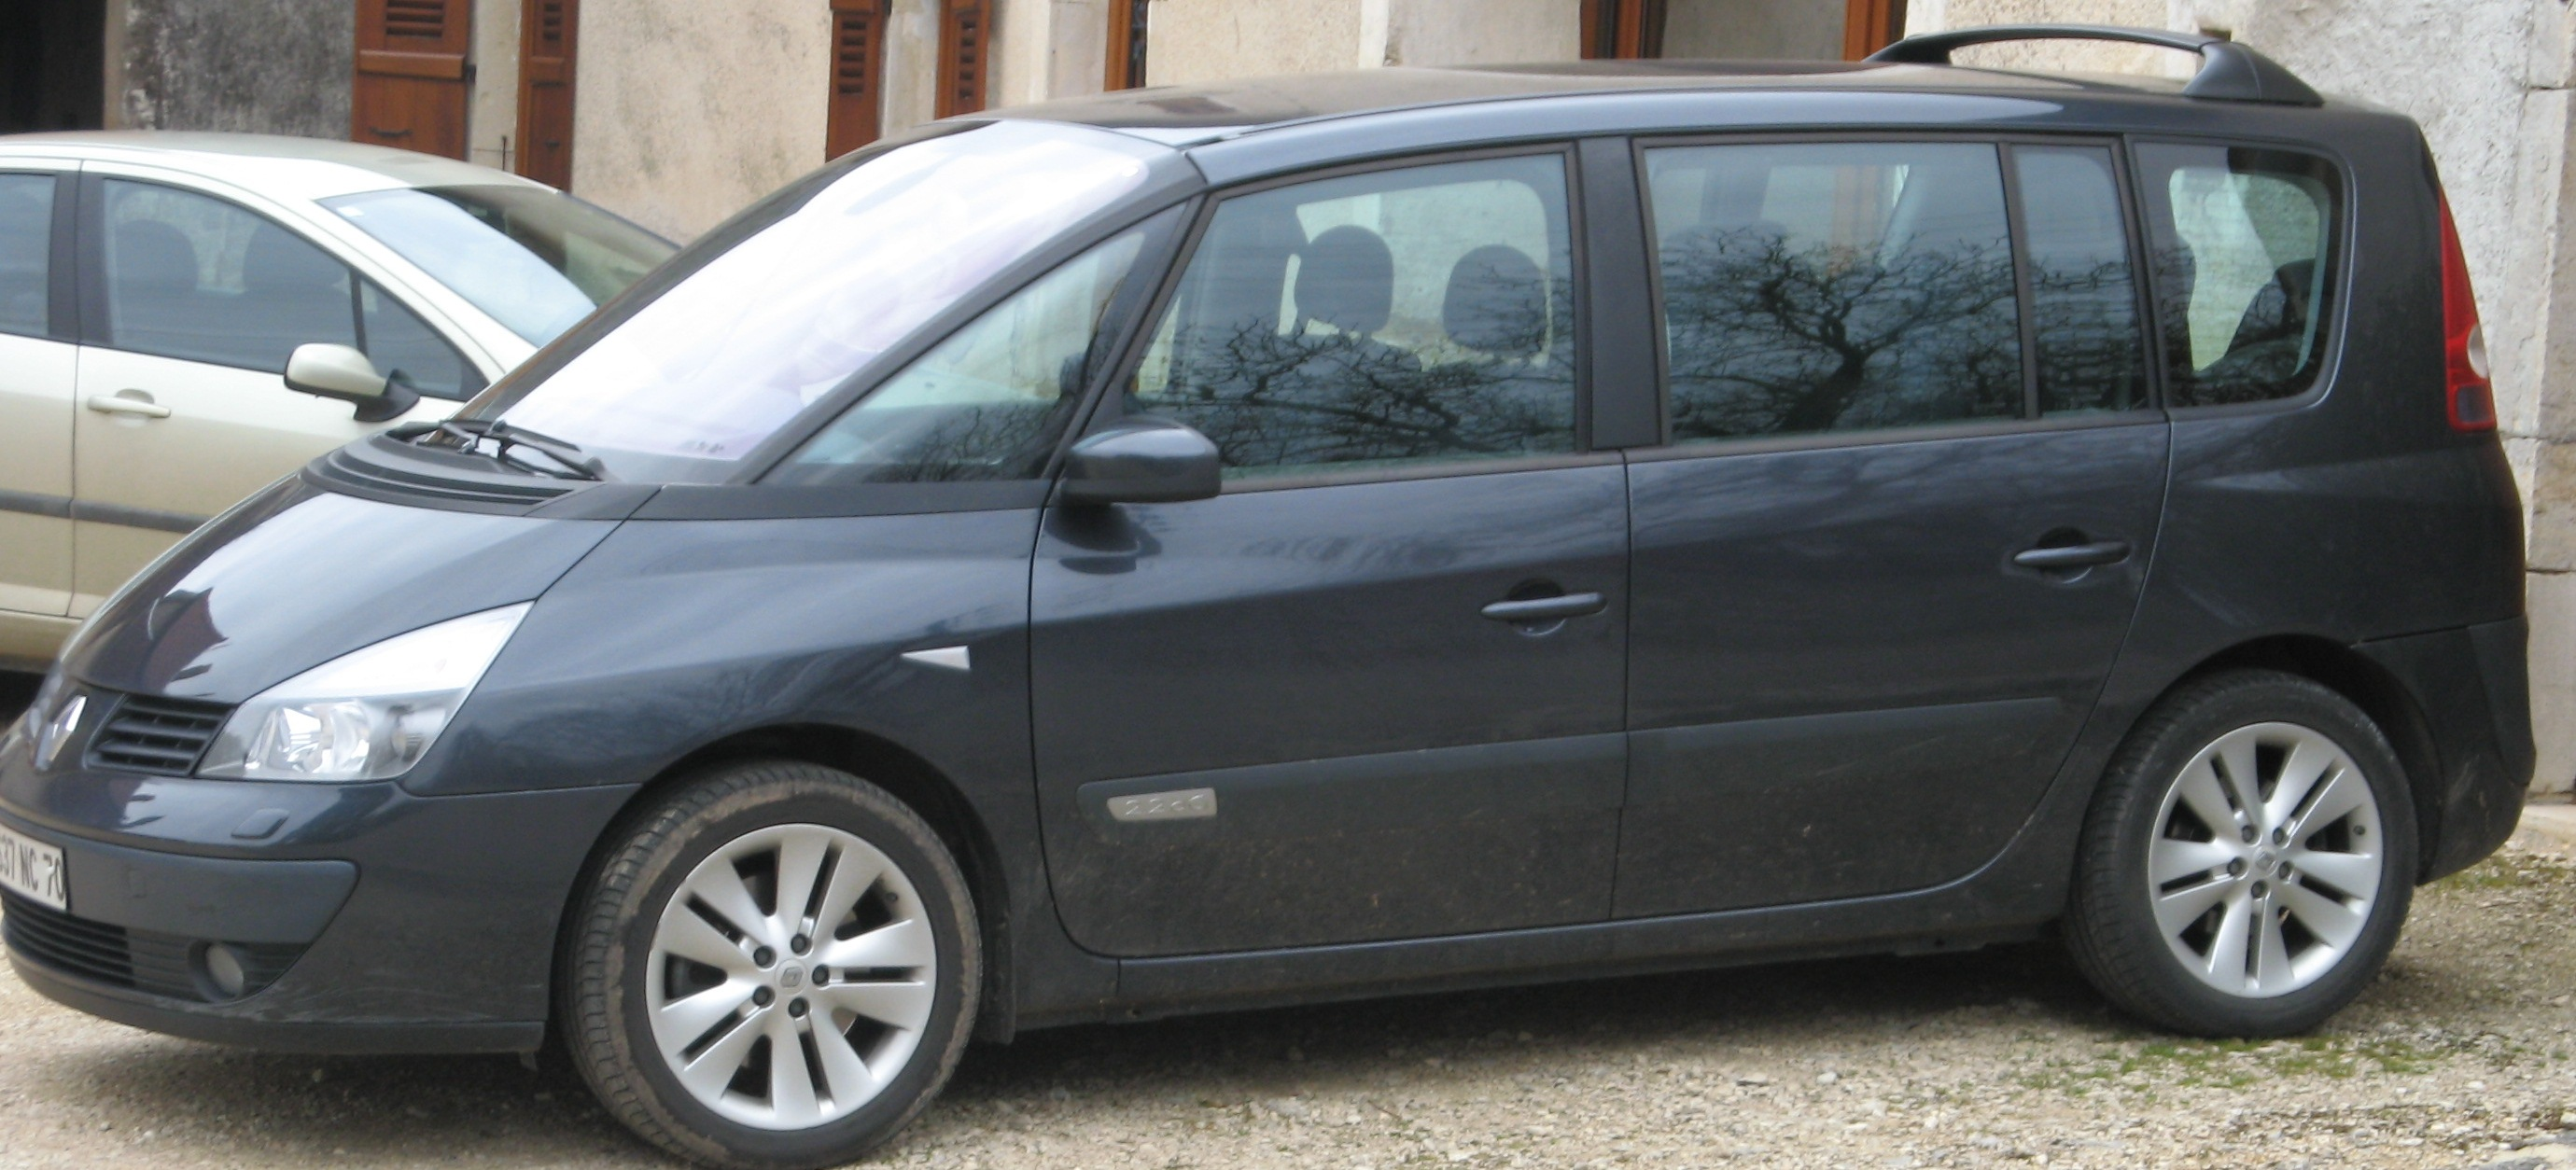 2004 renault espace photos informations articles. Black Bedroom Furniture Sets. Home Design Ideas